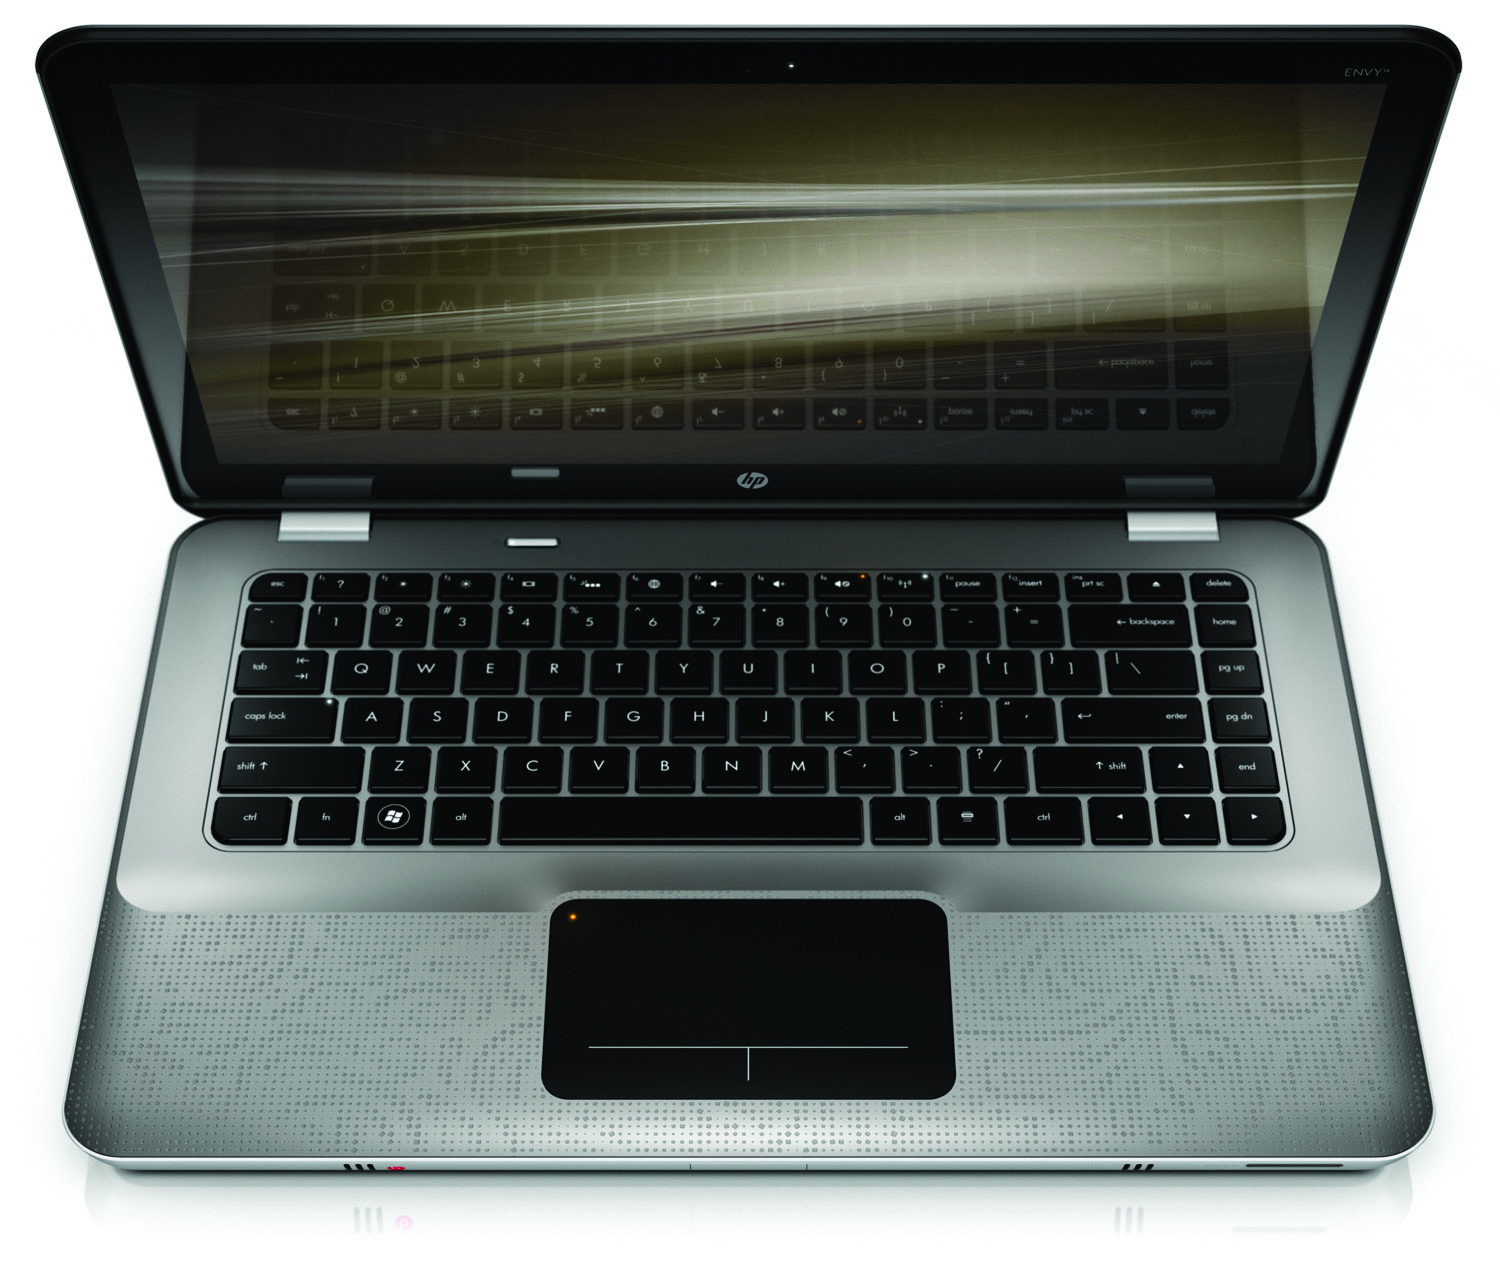 HP Envy 14, top open on white